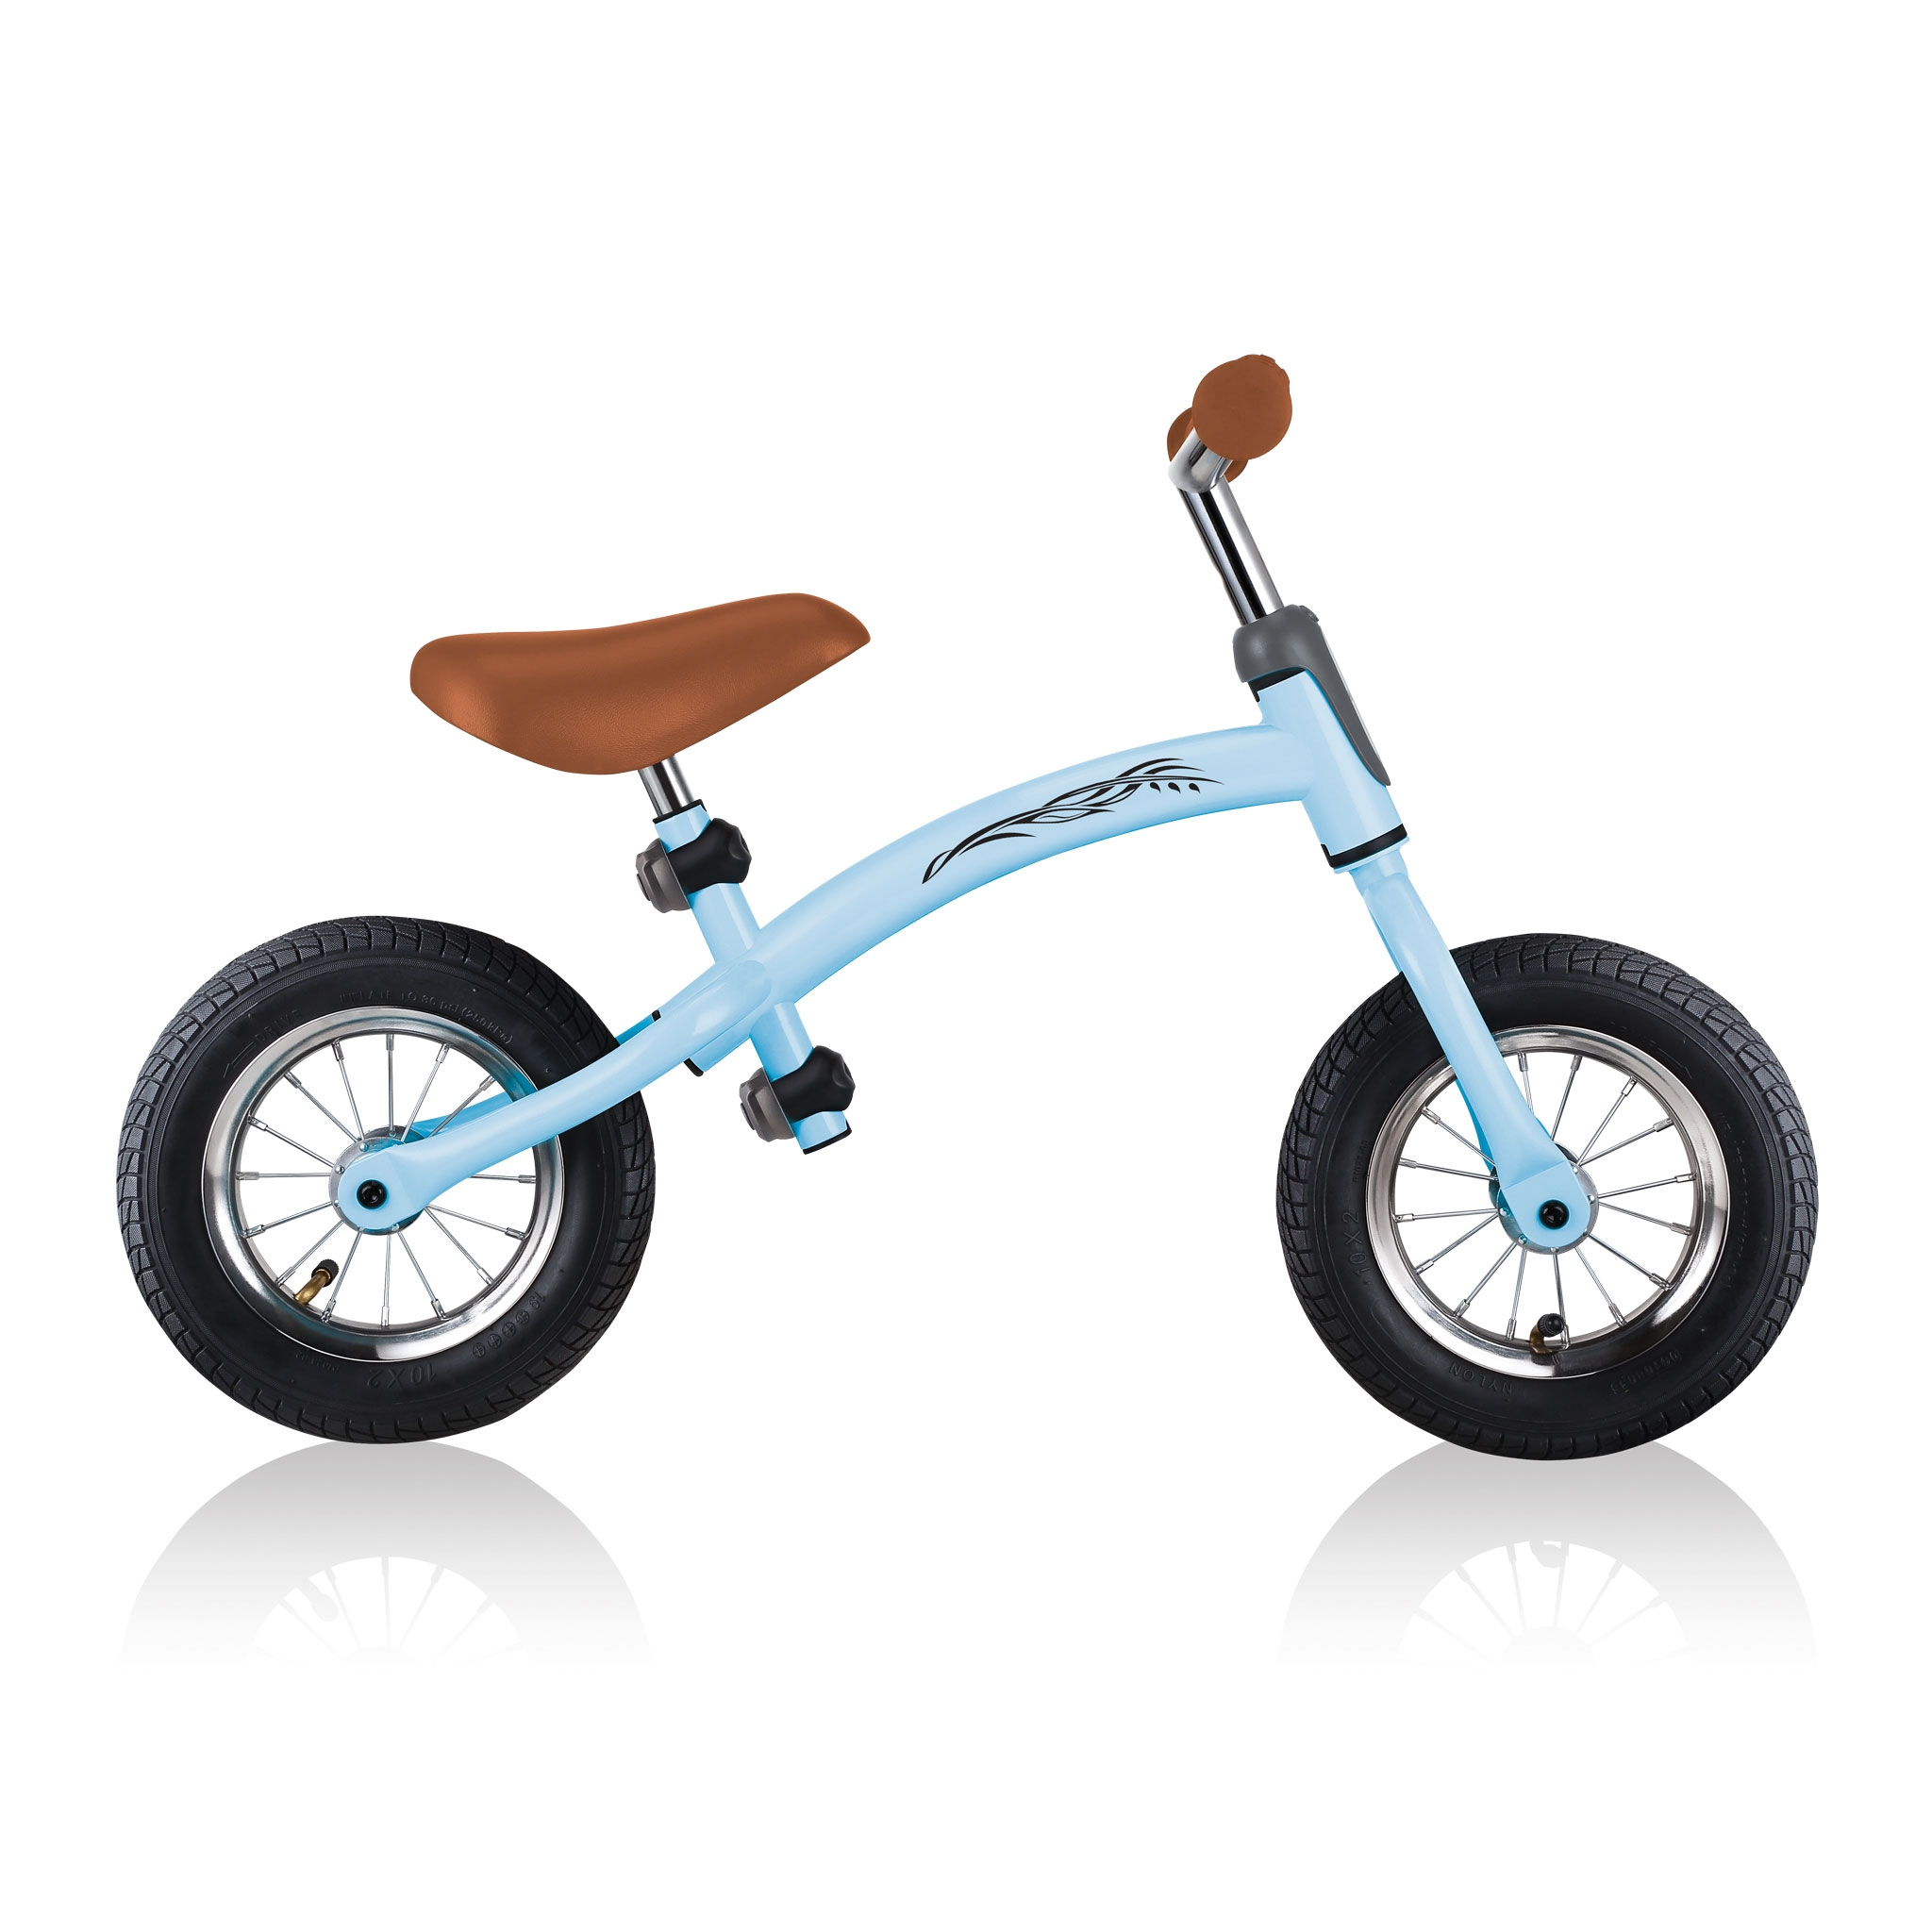 GO-BIKE-AIR-toddler-balance-bike-with-robust-steel-frame-and-shock-absorbing-rubber-tyres_pastel-blue 5